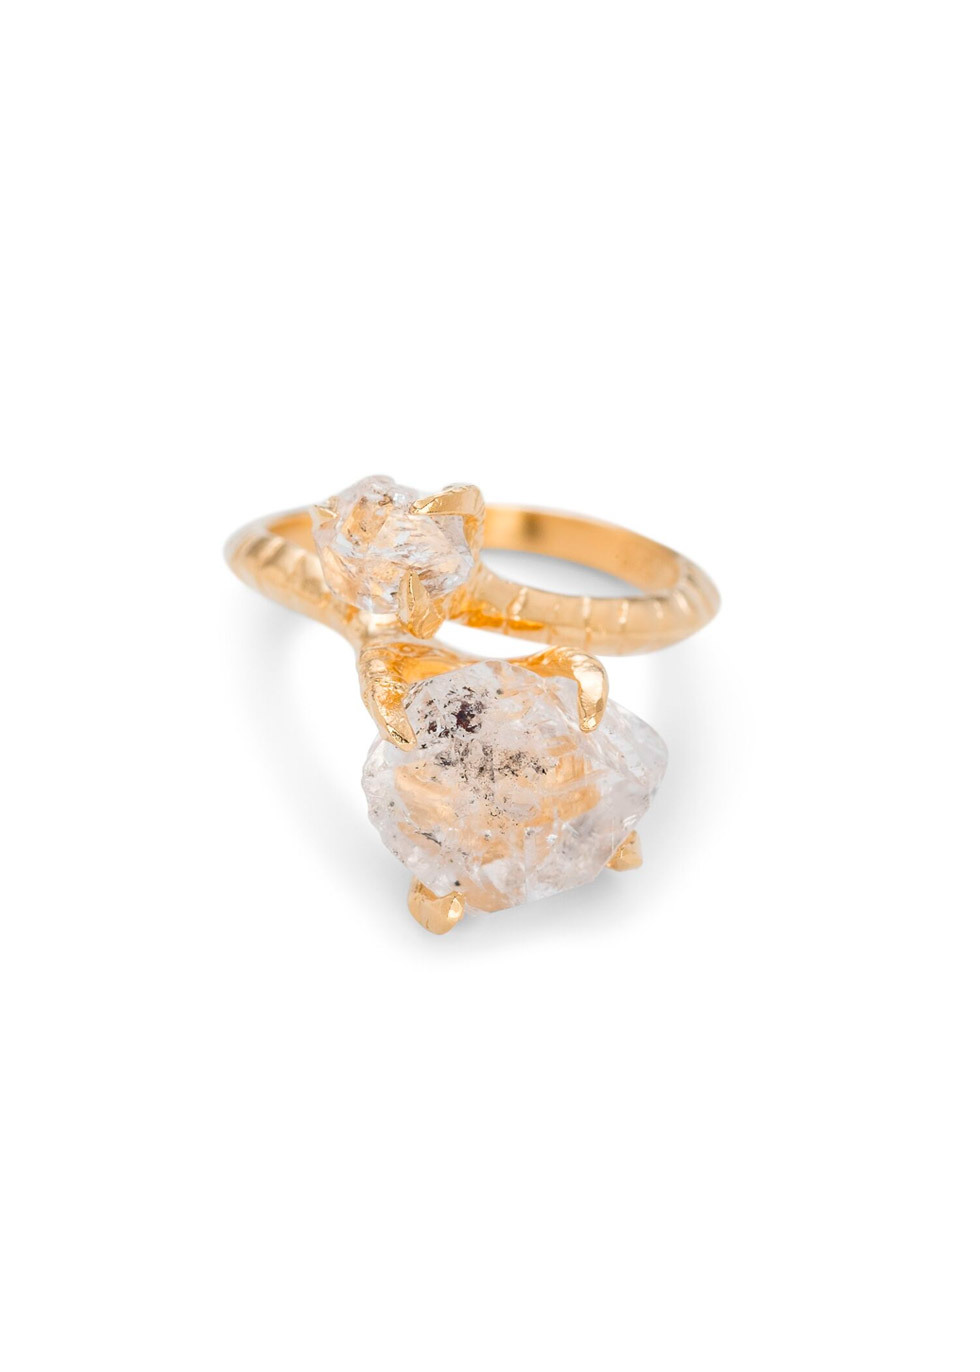 BJ0RG JEWELLERY DOUBLE HERKIMER RING SIZE L